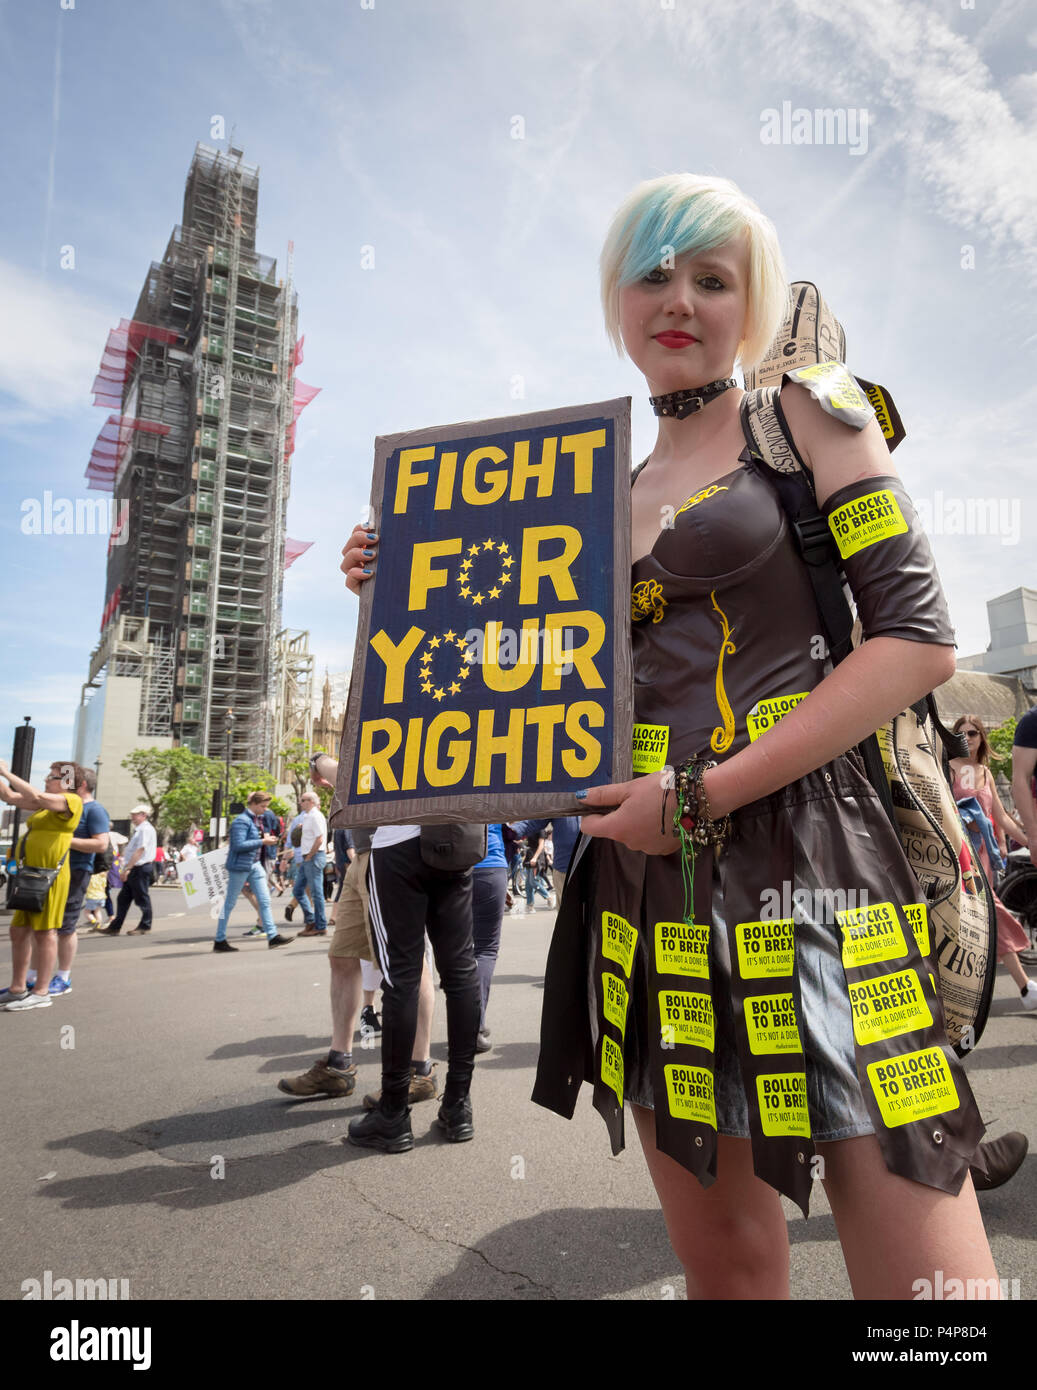 London, UK. 23rd June, 2018. Anti-Brexit Protest: Over 100,000 attend 'People's Vote' pro-EU march to demand a referendum on the terms of Brexit two years on from the vote. Credit: Guy Corbishley/Alamy Live News - Stock Image